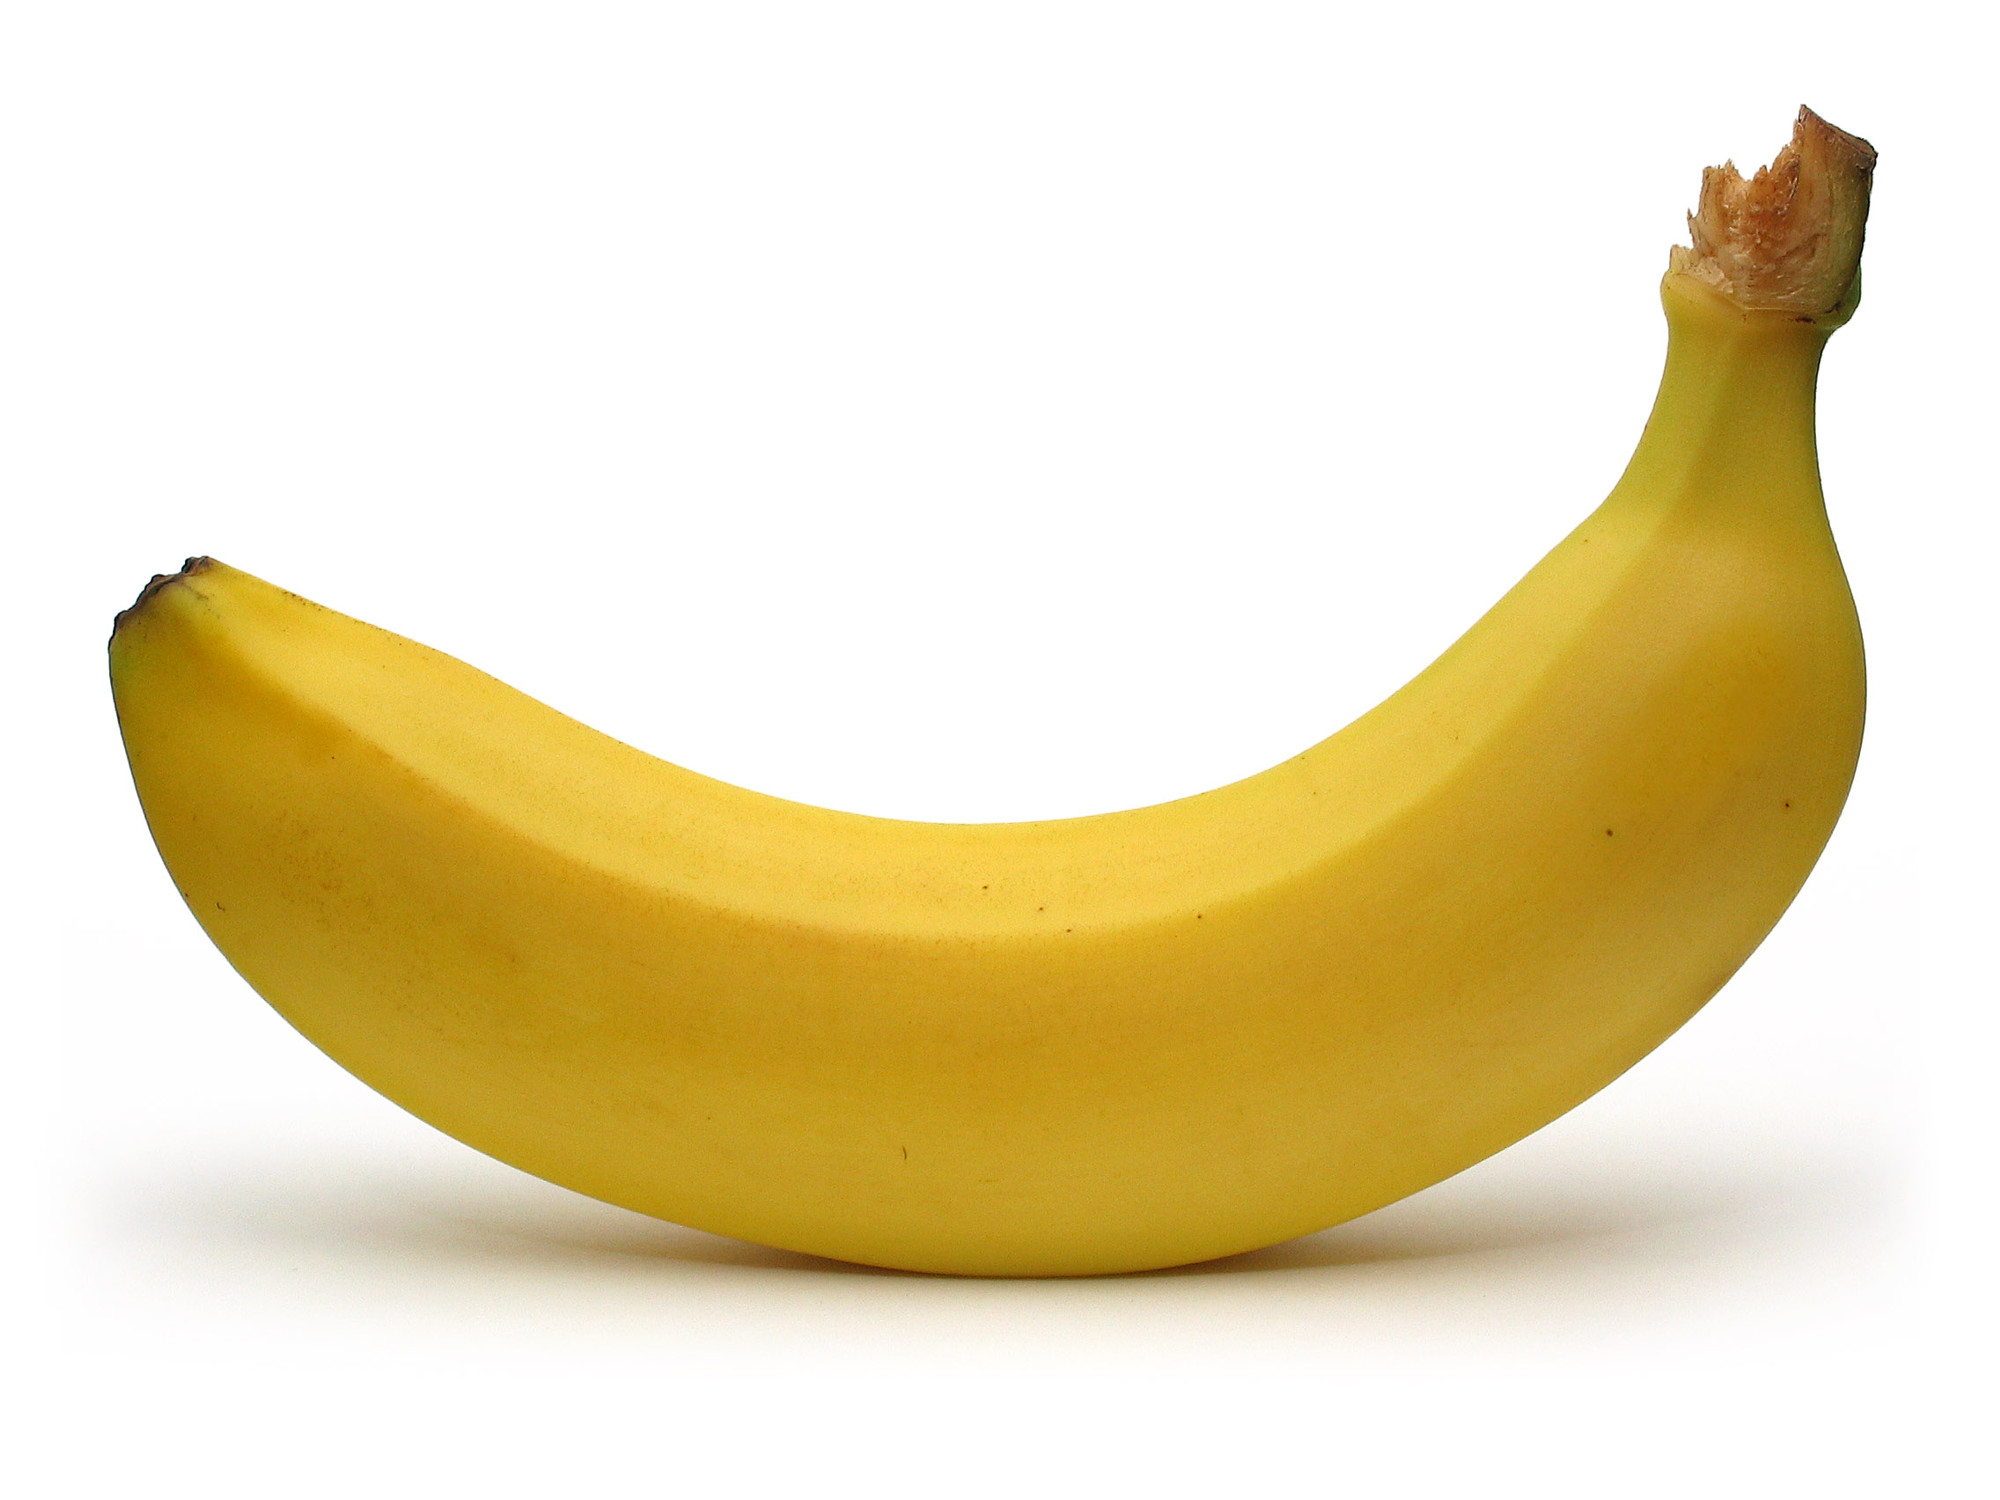 Banana | Free Images at Clker.com - vector clip art online, royalty ...